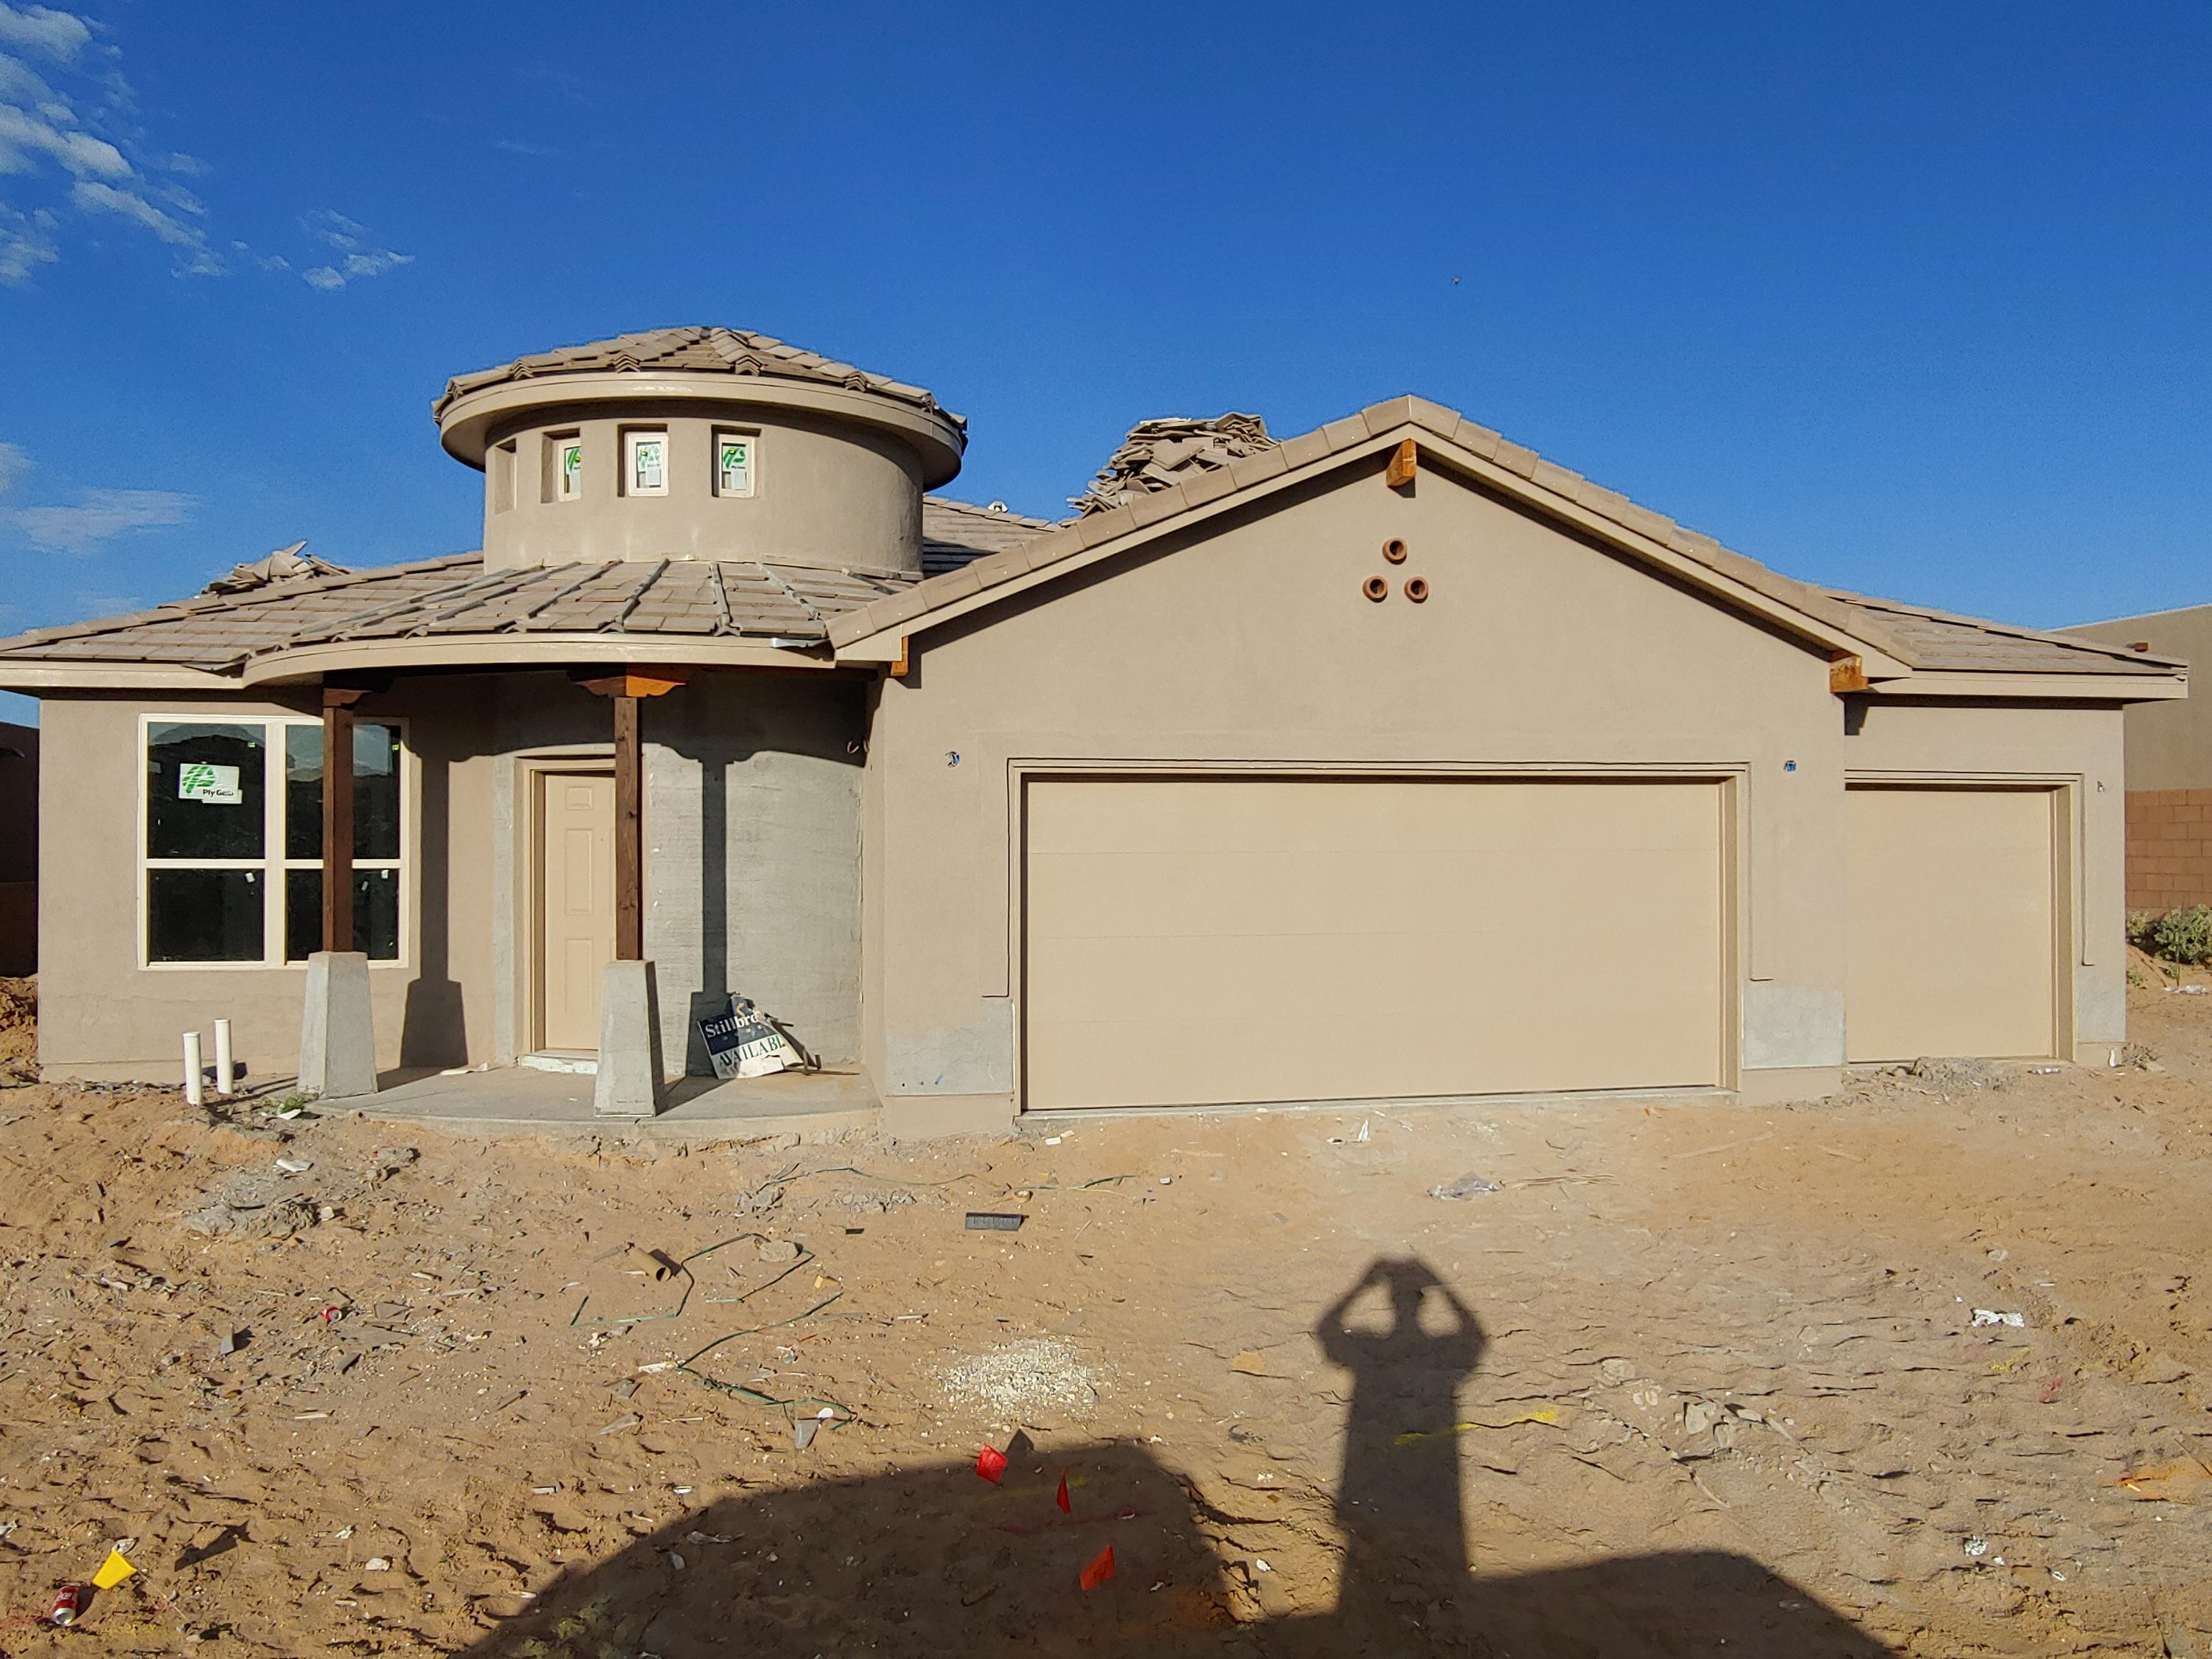 Rare find!  A brand new one story home on a large lot! Makes for a little more distance between homes and allows for not having to go with stairs. Gorgeous 3 or 4 bedroom home with na powder room near the entry, large great room open to Kitchen. Superb Kitchen appointments Wall oven, 5 burner cooktop, Walk in pantry, Island with bar, window above sink. Double doors to master and master bath as well as study or 4th bedroom near entry. Seperate entry foyer. Covered rear porch. Stillbrooke exclusive GREENSMART energy features to help environment and keep your bills low.